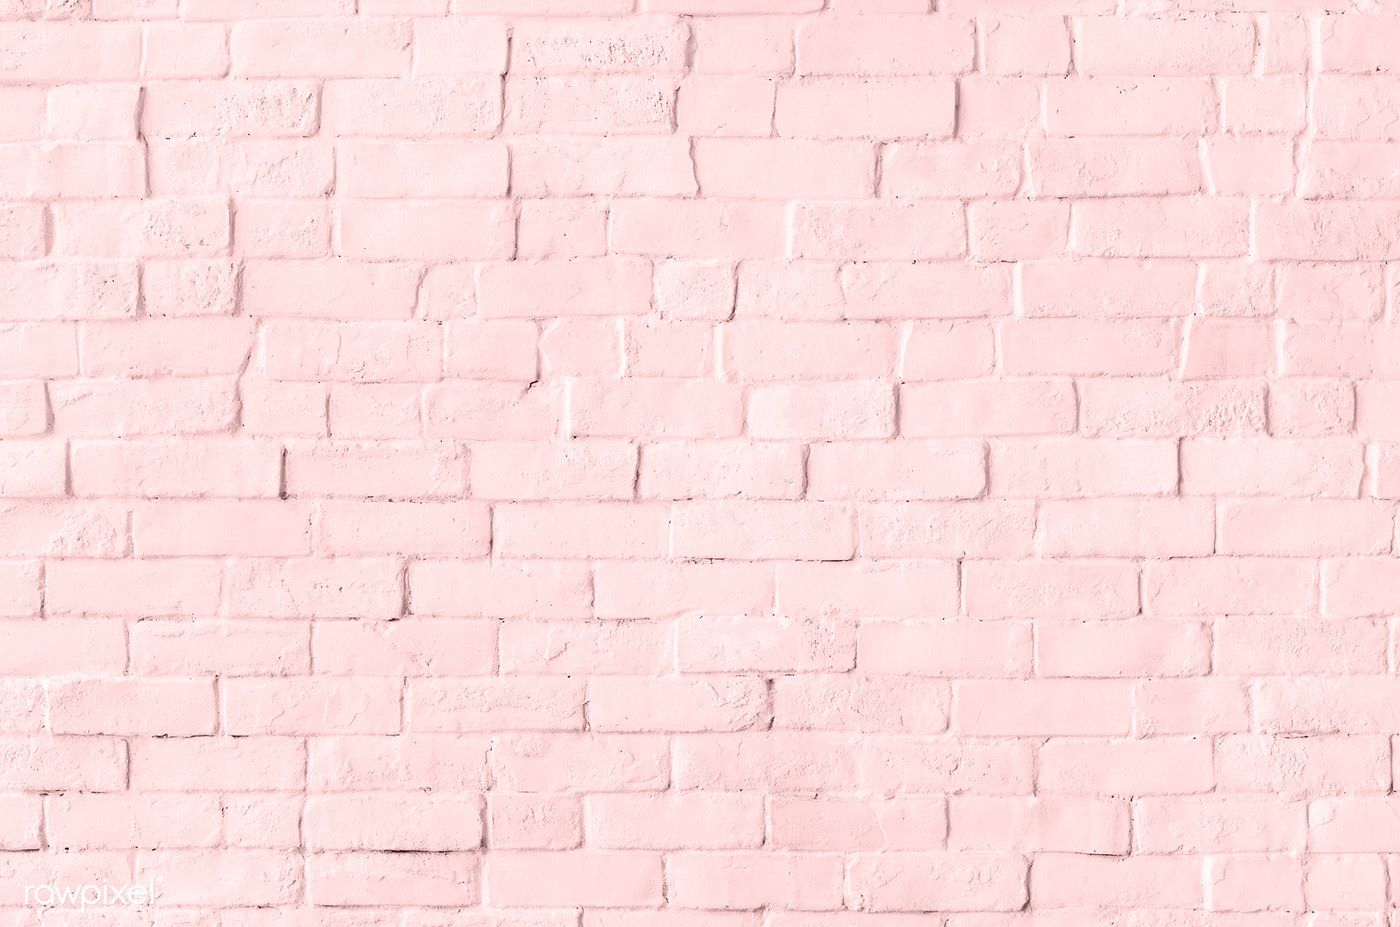 Pastel Pink Brick Wall Textured Background Free Image By Rawpixel Com In 2020 Brick Exterior House Brick Wall Brick Wall Background